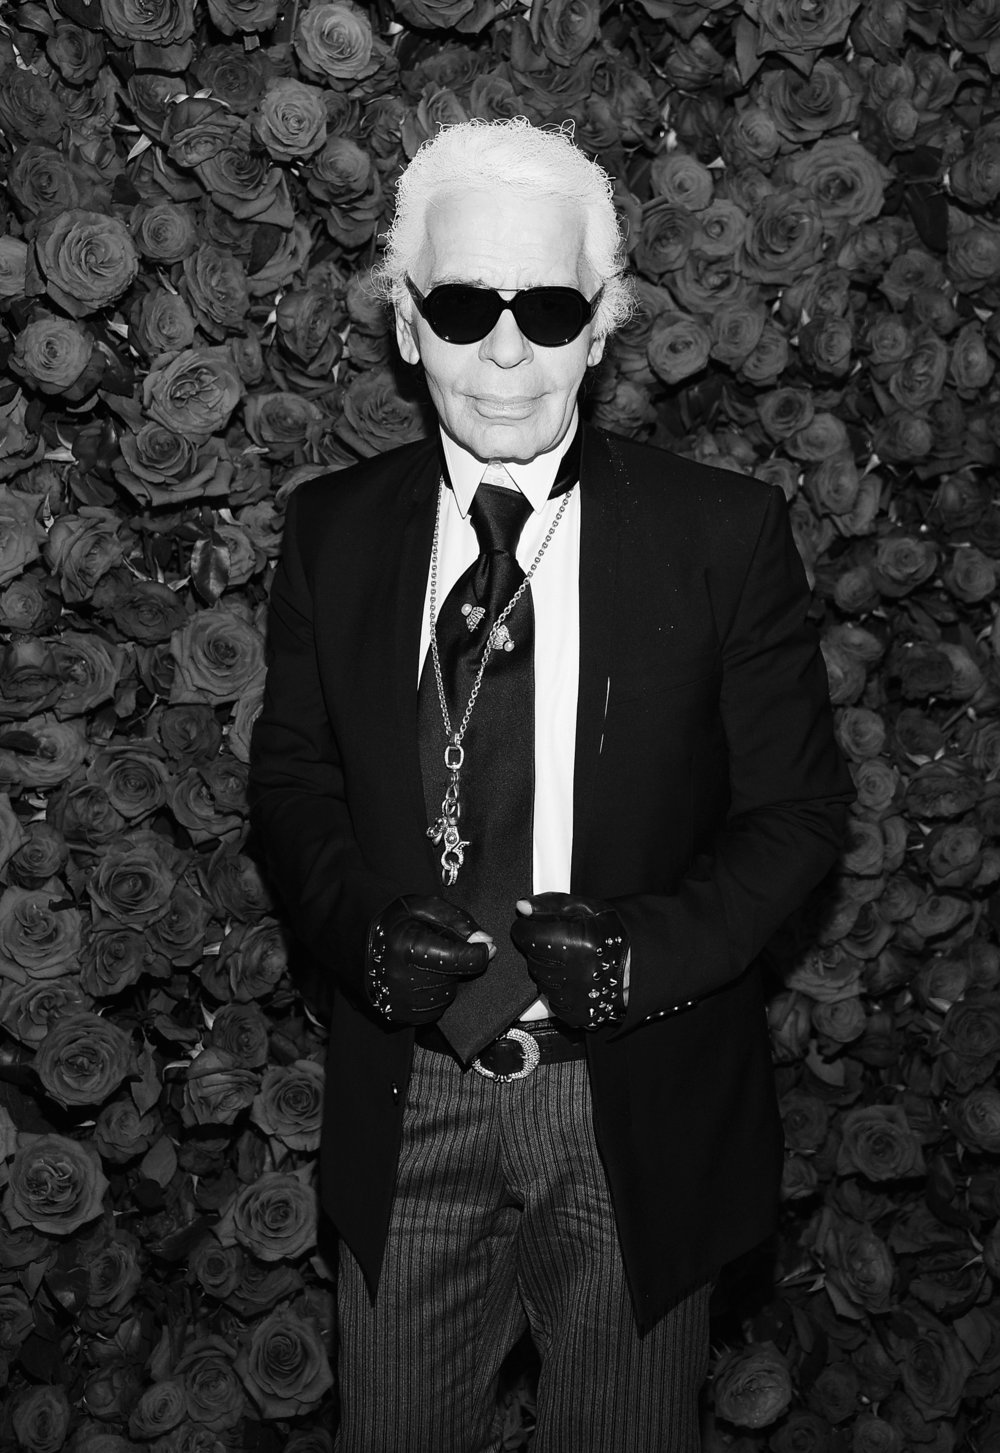 Not content to toil in fashion, Karl Lagerfeld wanted to dominate it, to preside over it, and to make grand pronouncements about how it should evolve. ©Dimitrios Kambouris/Getty. Image courtesy of Getty Images and The New Yorker